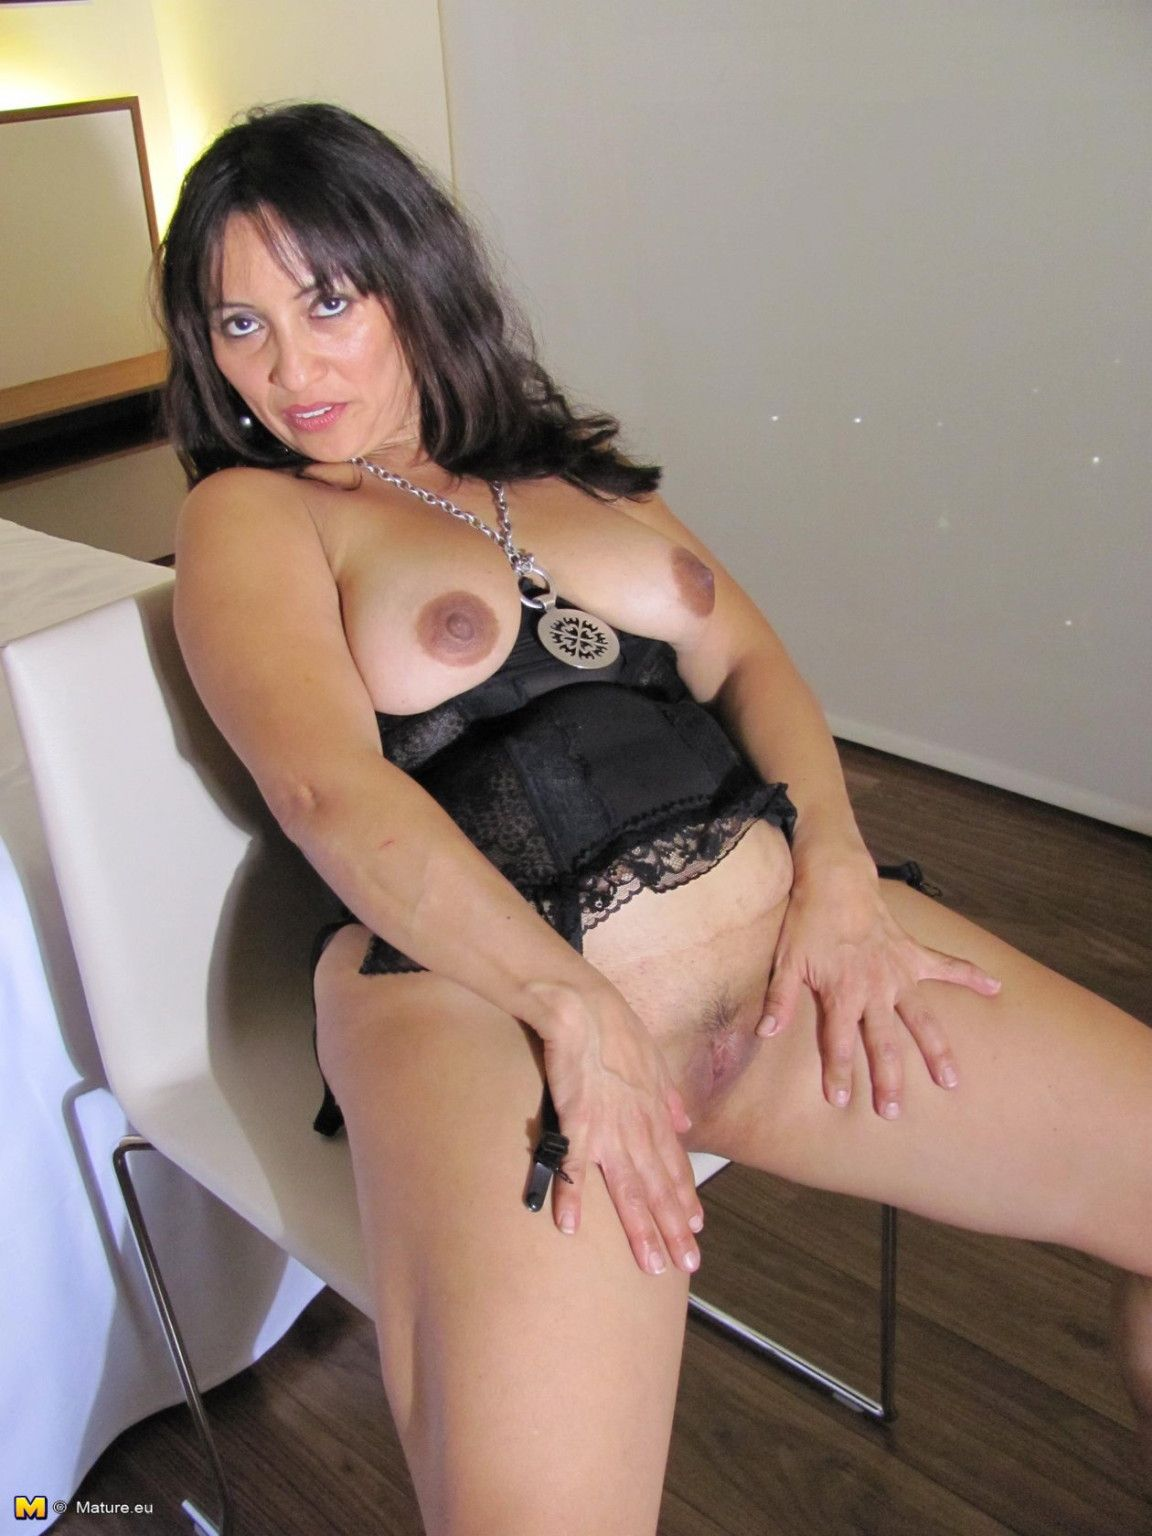 Hot housewife angy loves to get herself wet